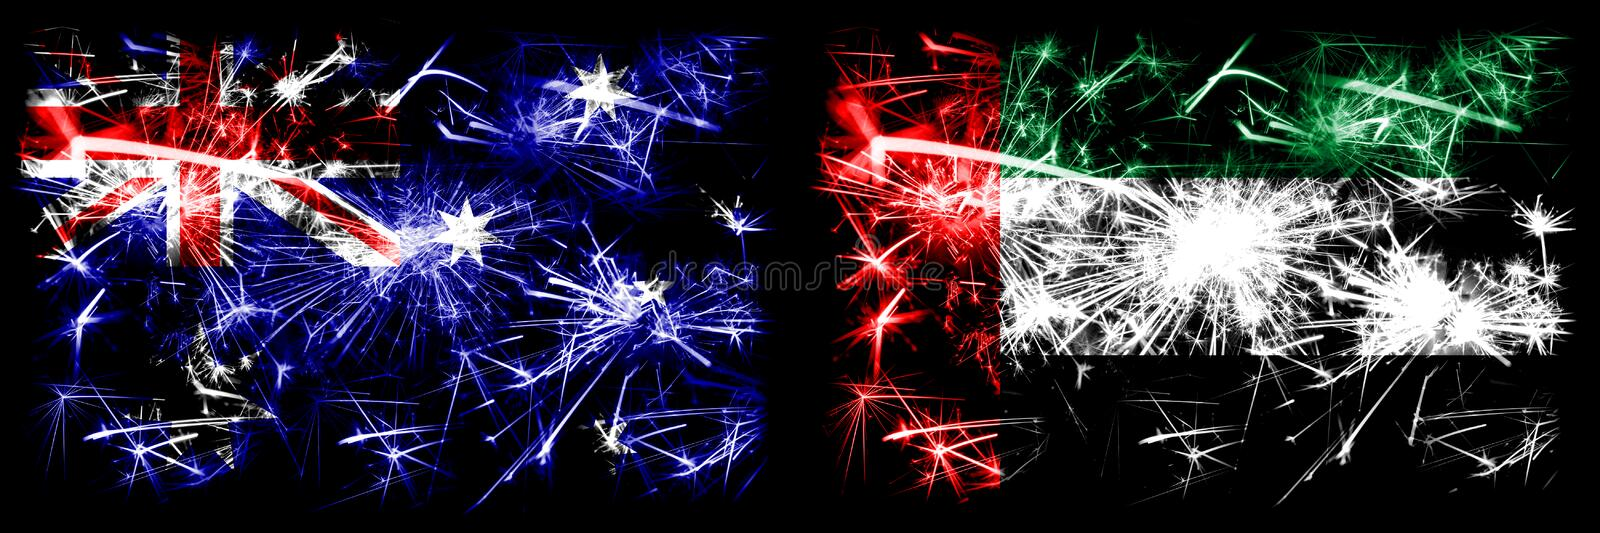 Australia, Ozzie vs United Arab Emirates, Emirati New Year celebration sparkling fireworks flags concept background. Combination. Of two abstract states flags royalty free stock image